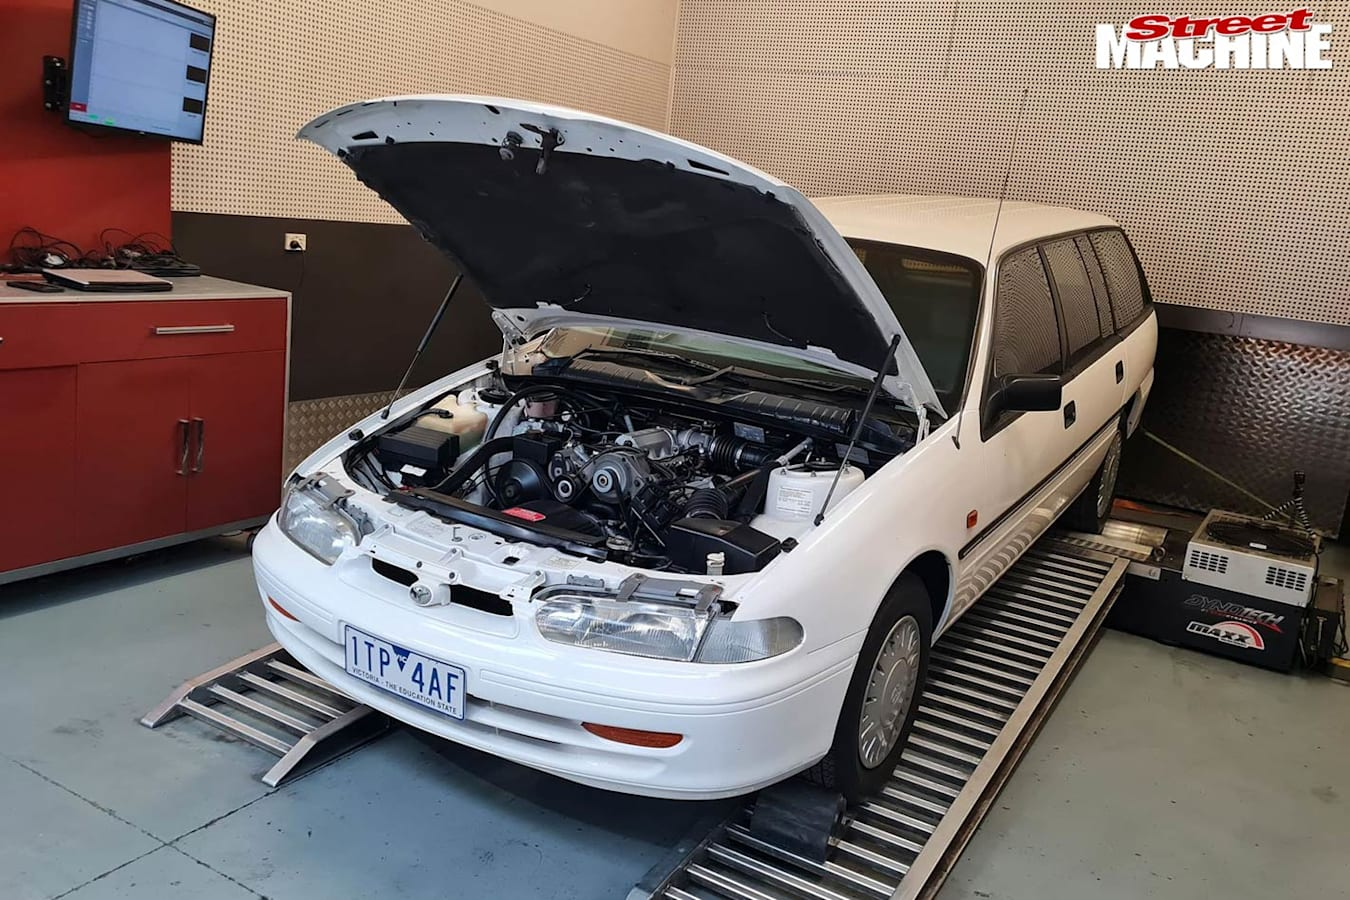 Archive Whichcar 2021 04 16 Misc Carnage Lexcen Dyno